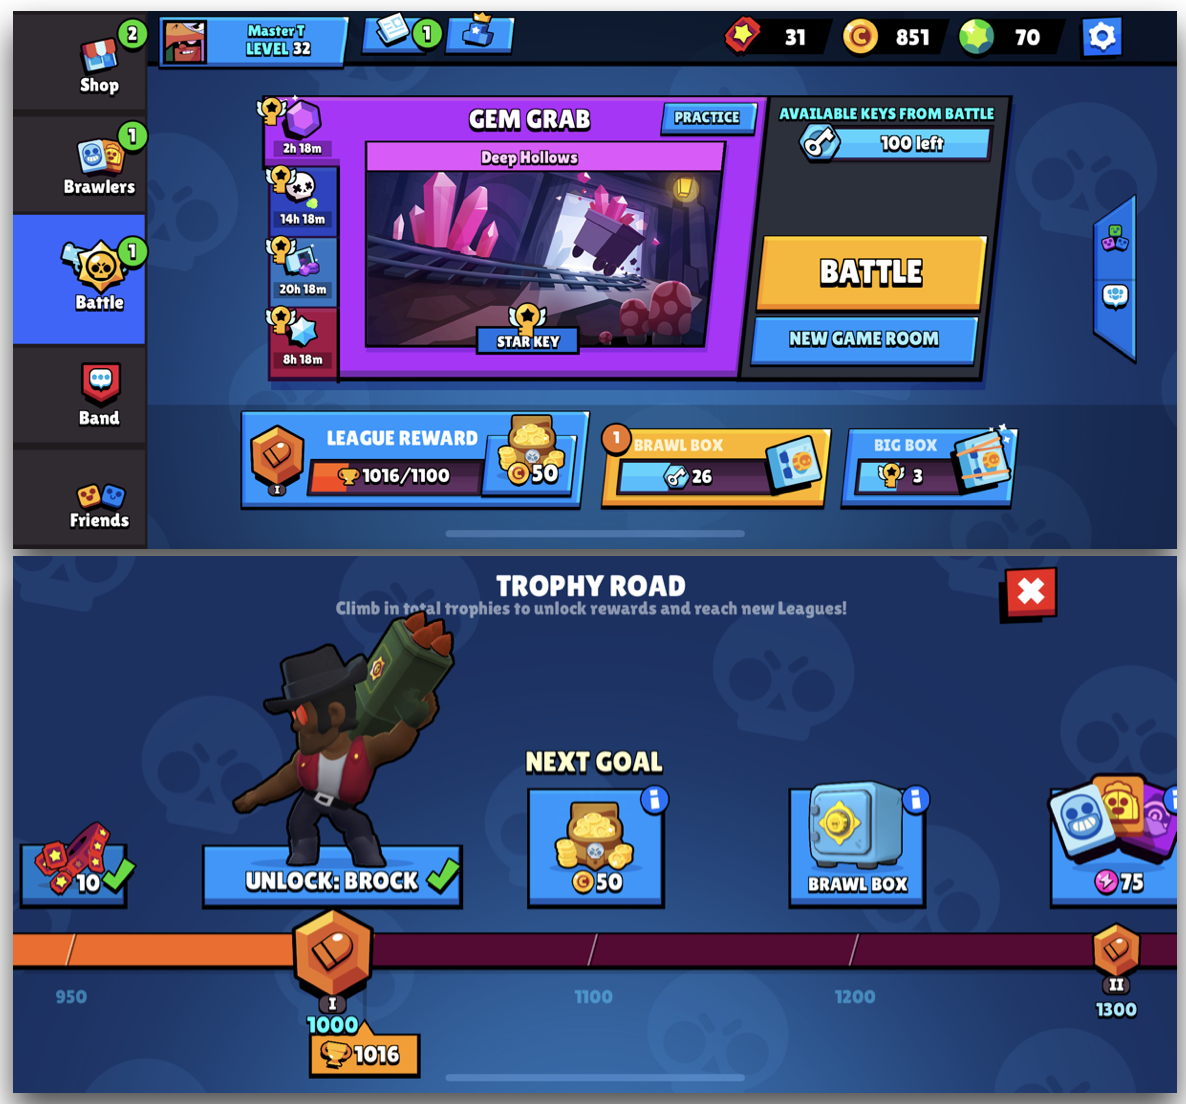 With the last update, the amazing UI and UX of Brawl Stars got even better. And the Trophy League system offered much needed reason to grind for the Trophies.